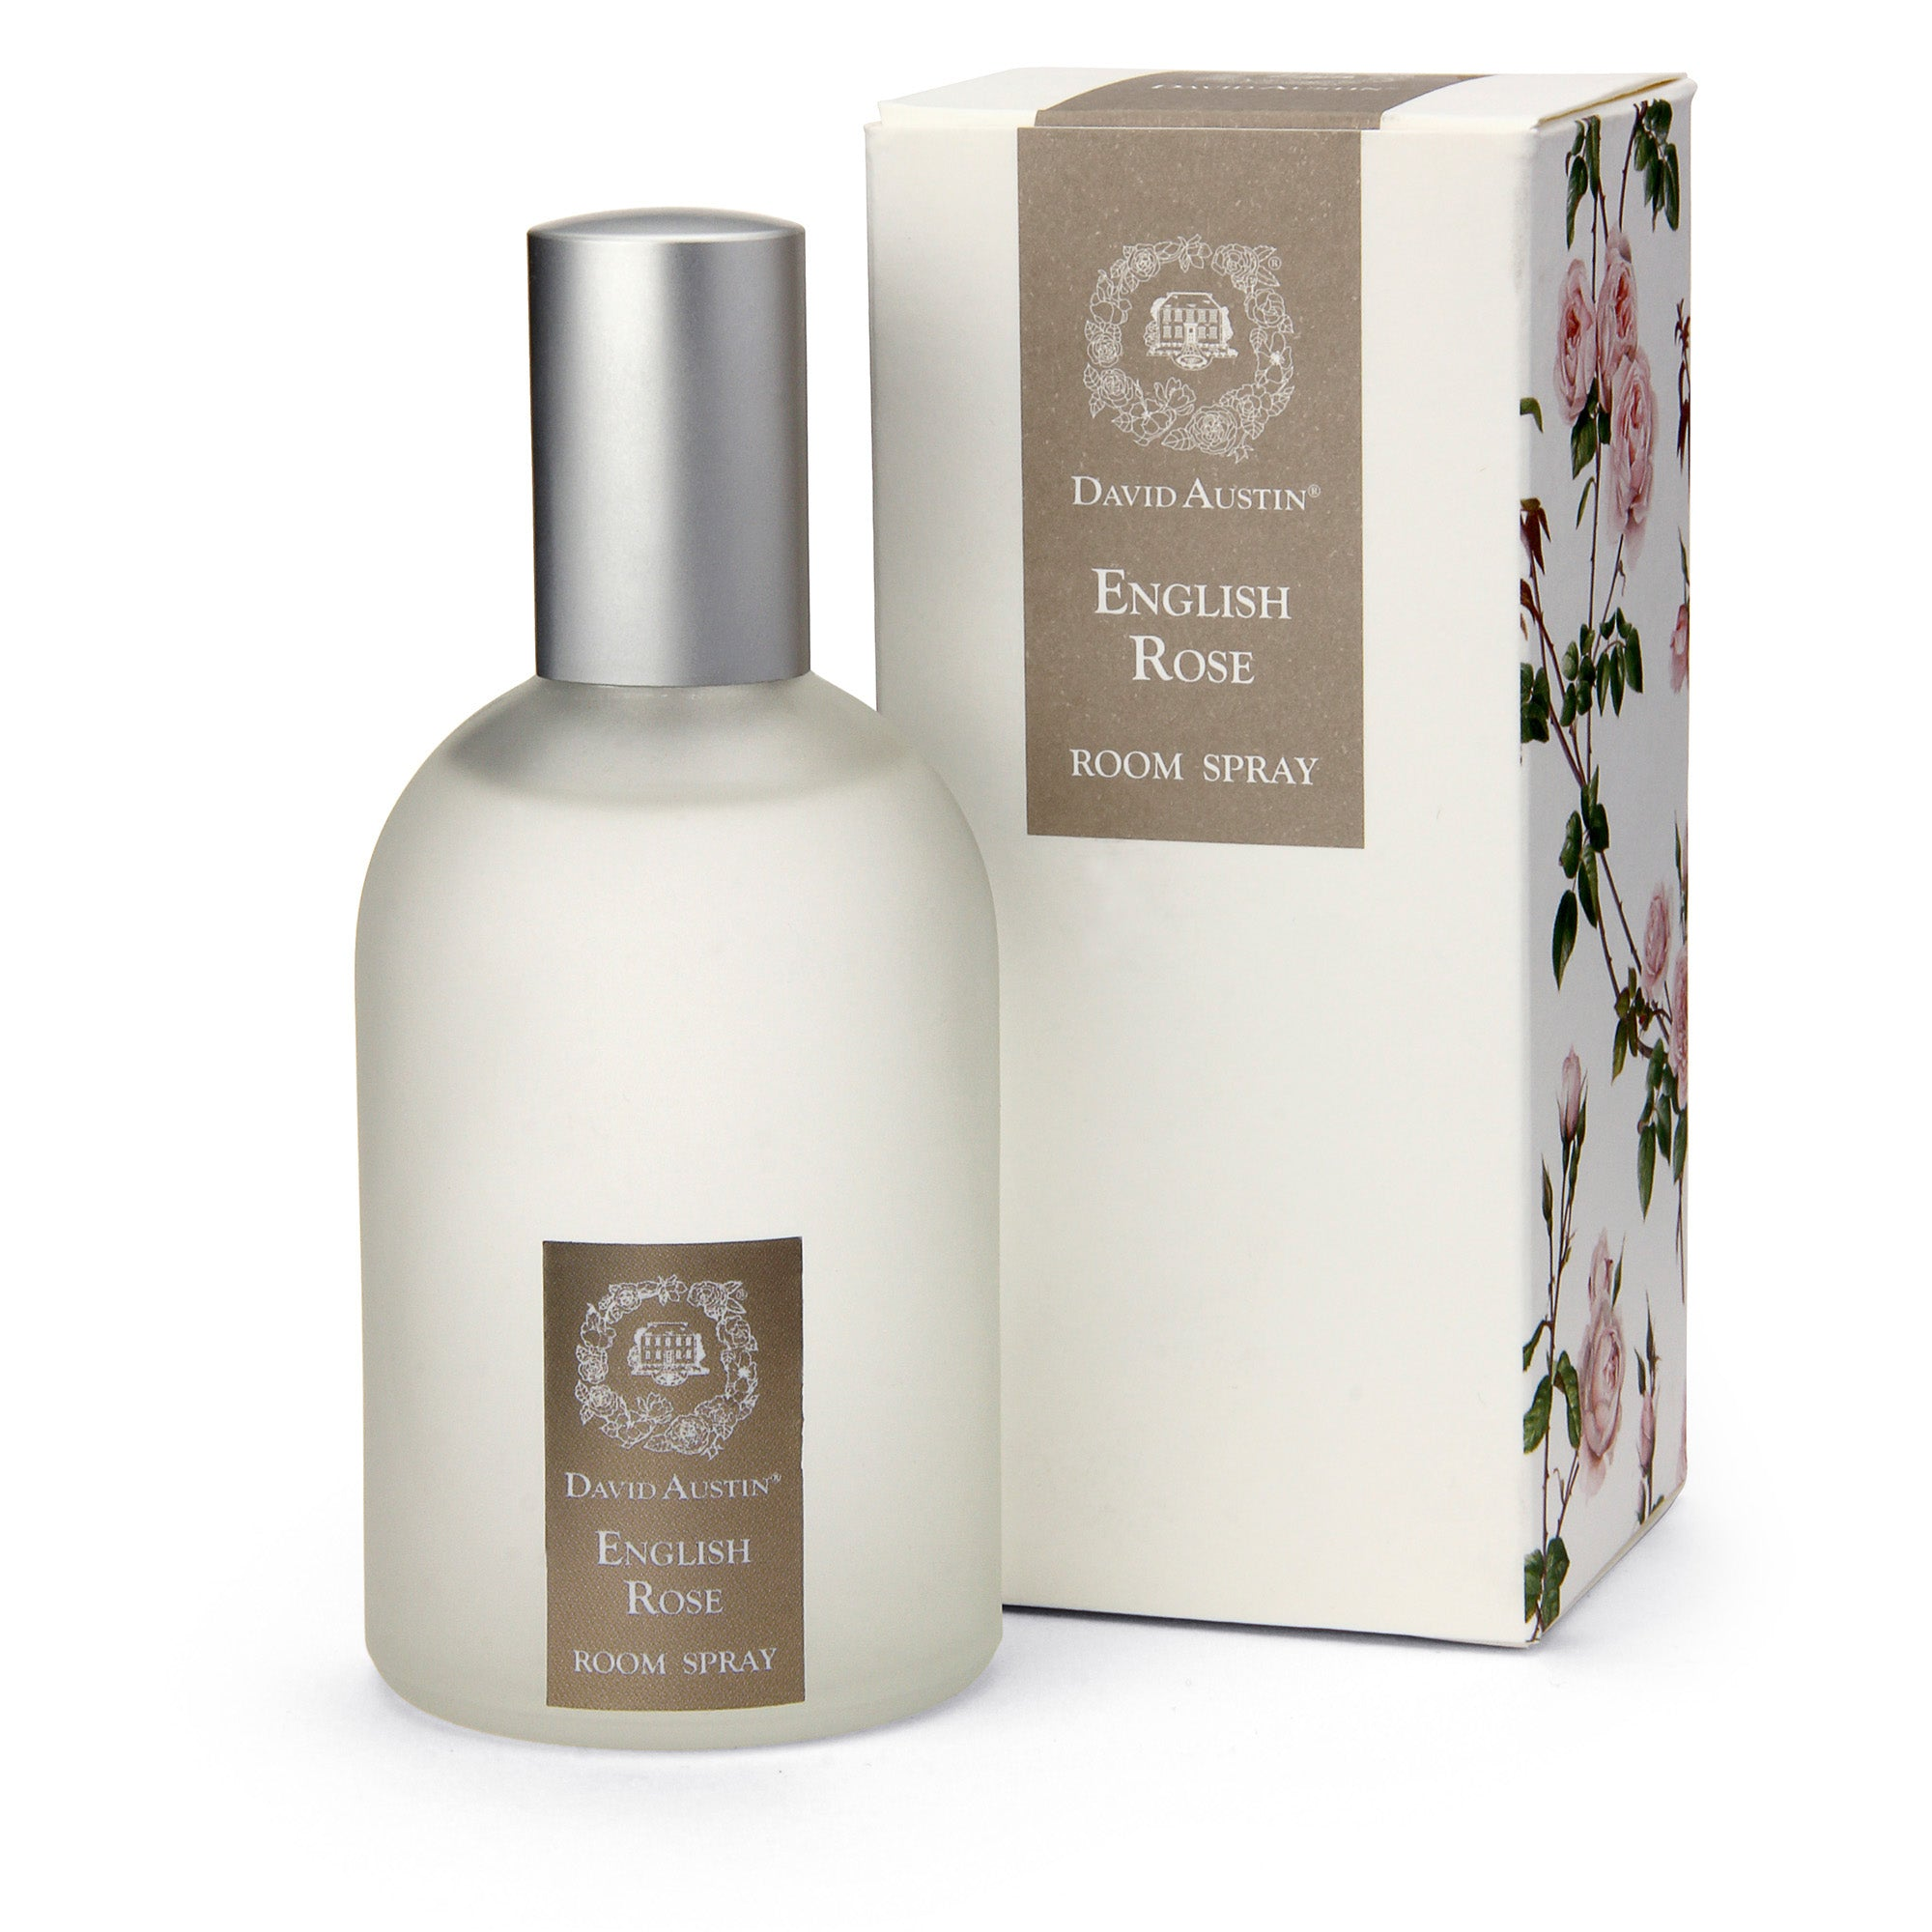 English Rose Room Spray